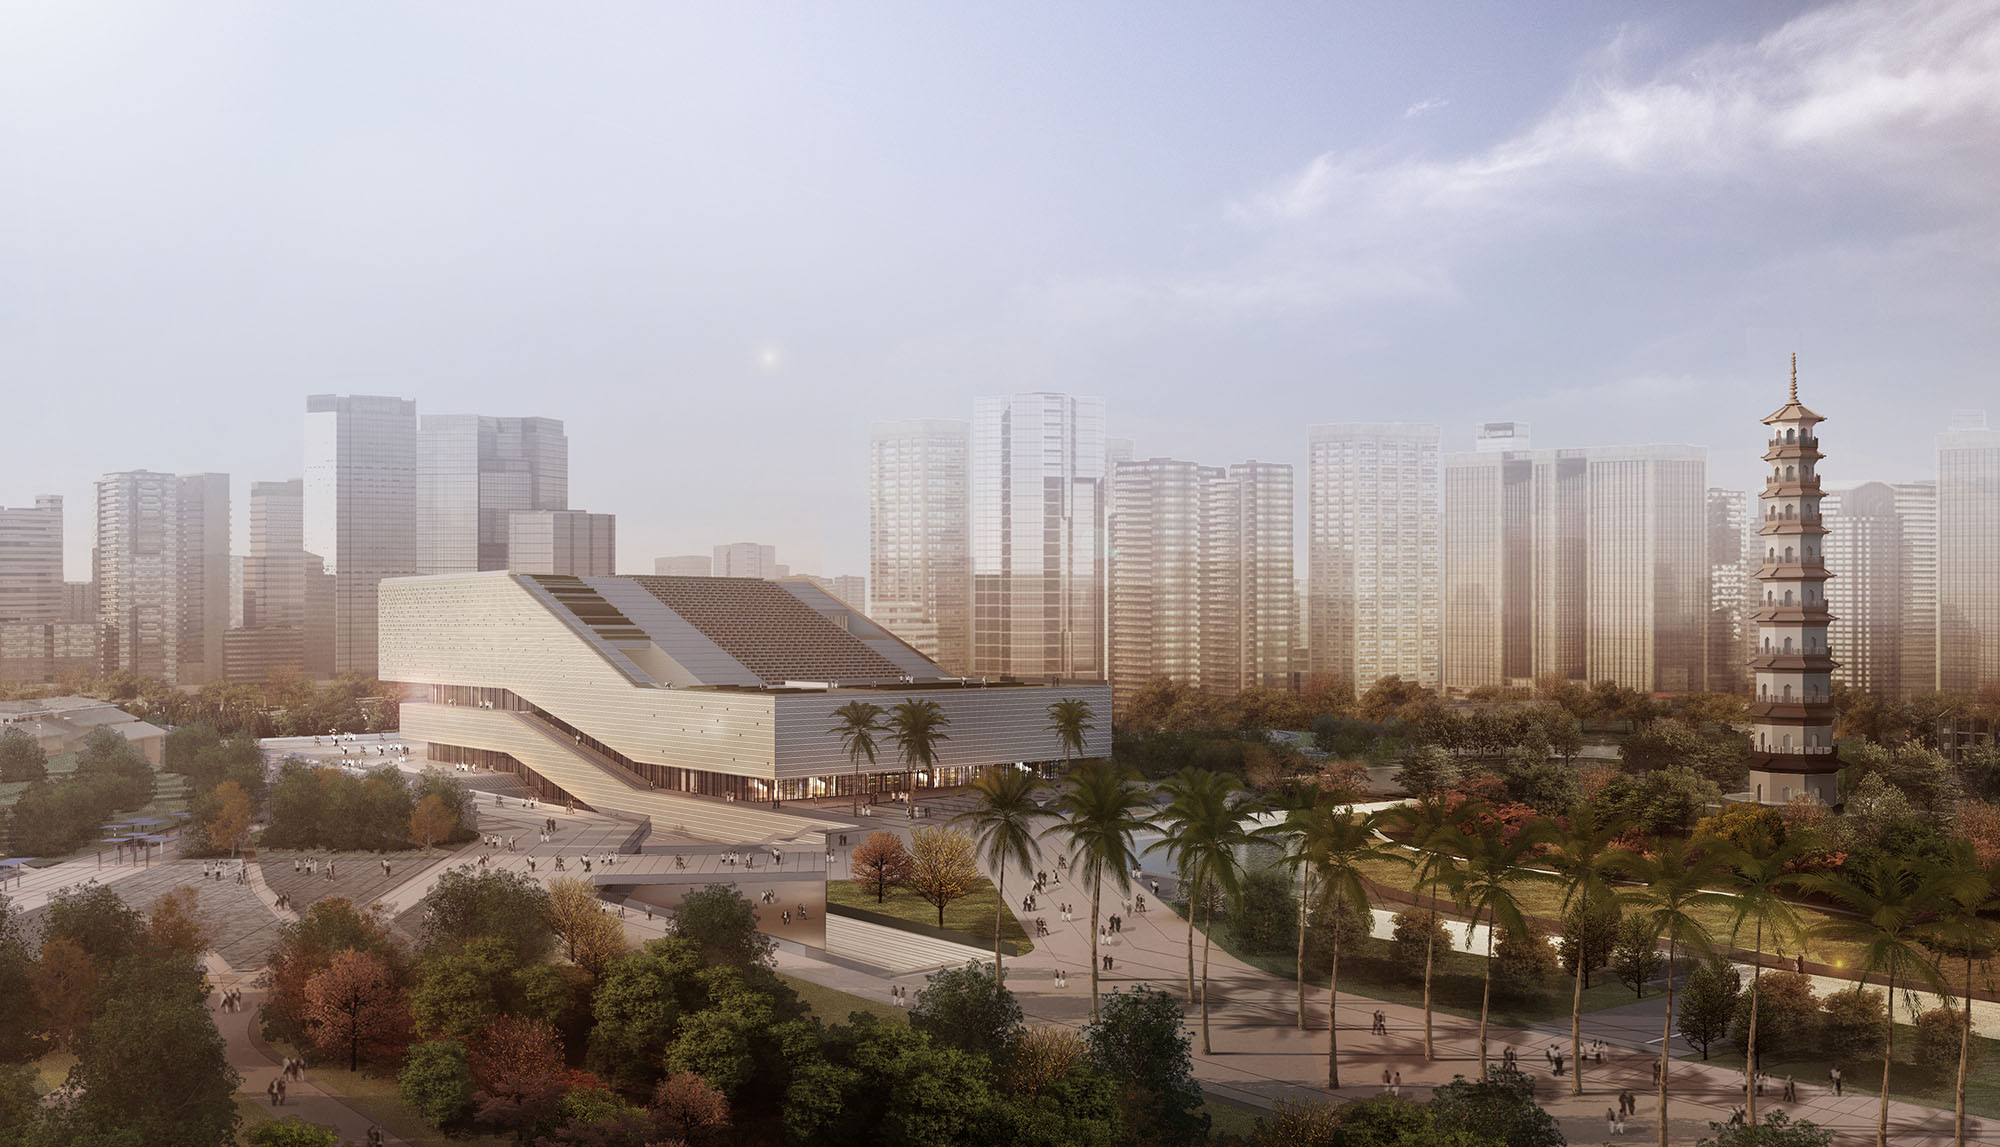 gmp Architekten Wins Competition to Design Guangzhou City Museum, © gmp Architekten